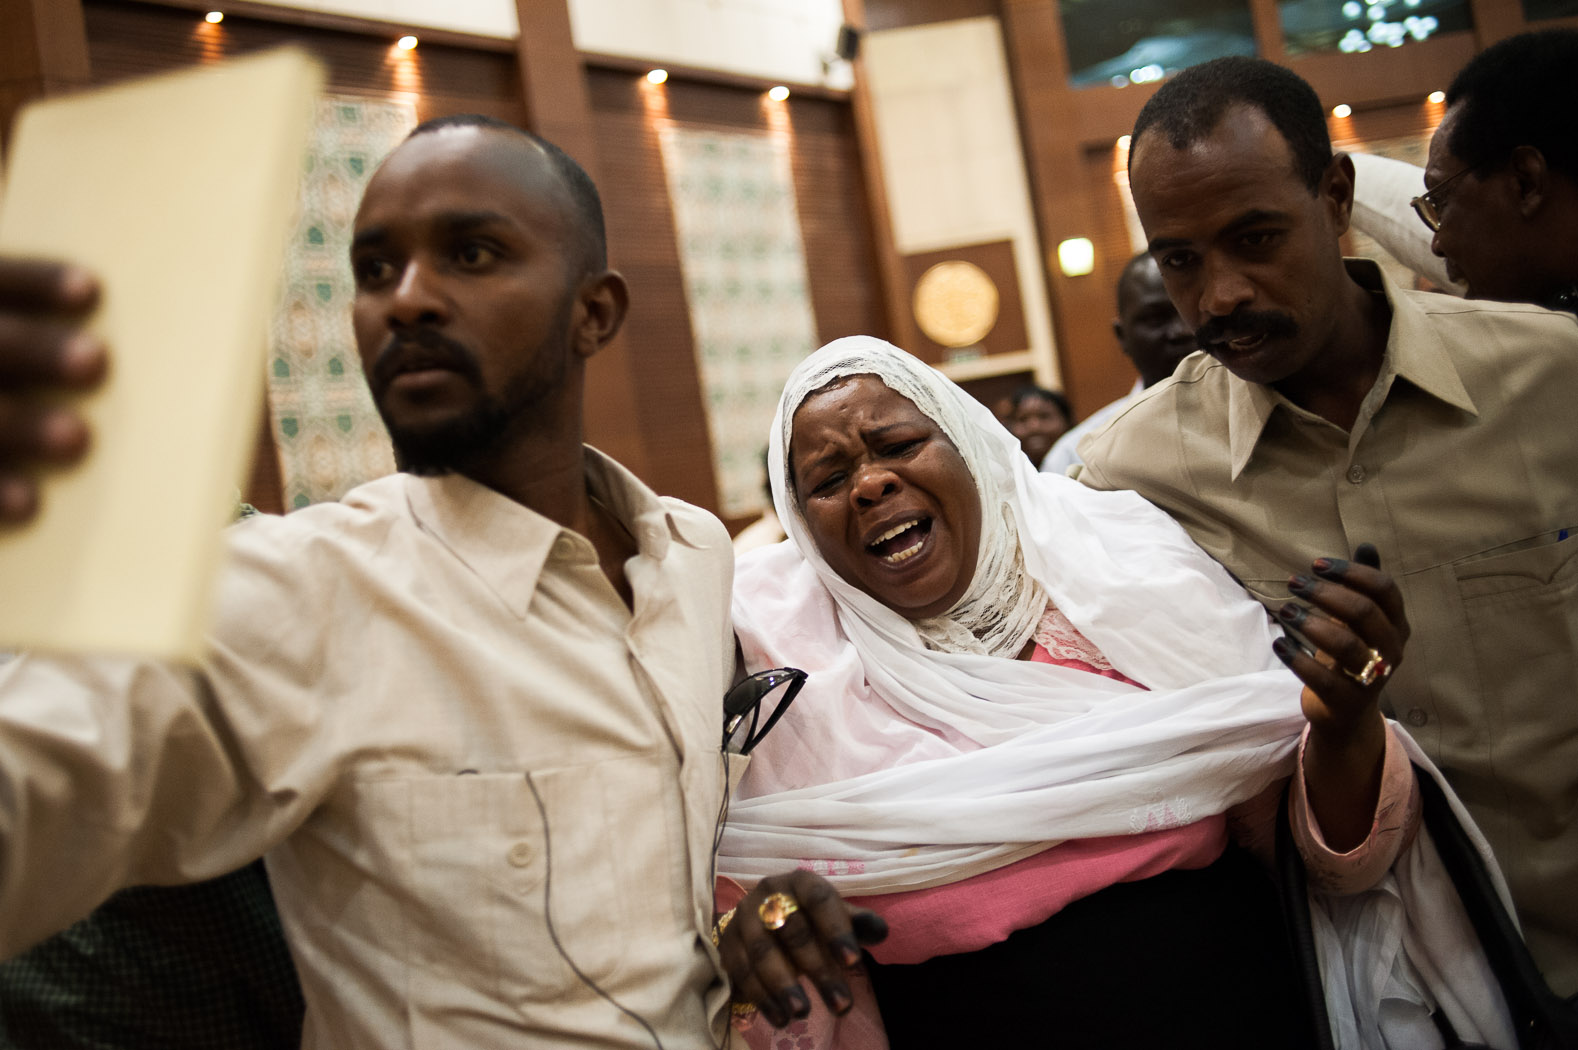 """On February 7, 2011, the full, final results were announced in Khartoum.  Nearly 99% of South Sudanese across the world had chosen secession, which was acknowledged and accepted by Sudan's president, Omar al-Bashir.  Not everyone was happy, though. This Sudanese woman in Khartoum was escorted from the hall in Khartoum as she lamented that """"Sudan is one country, not two""""."""